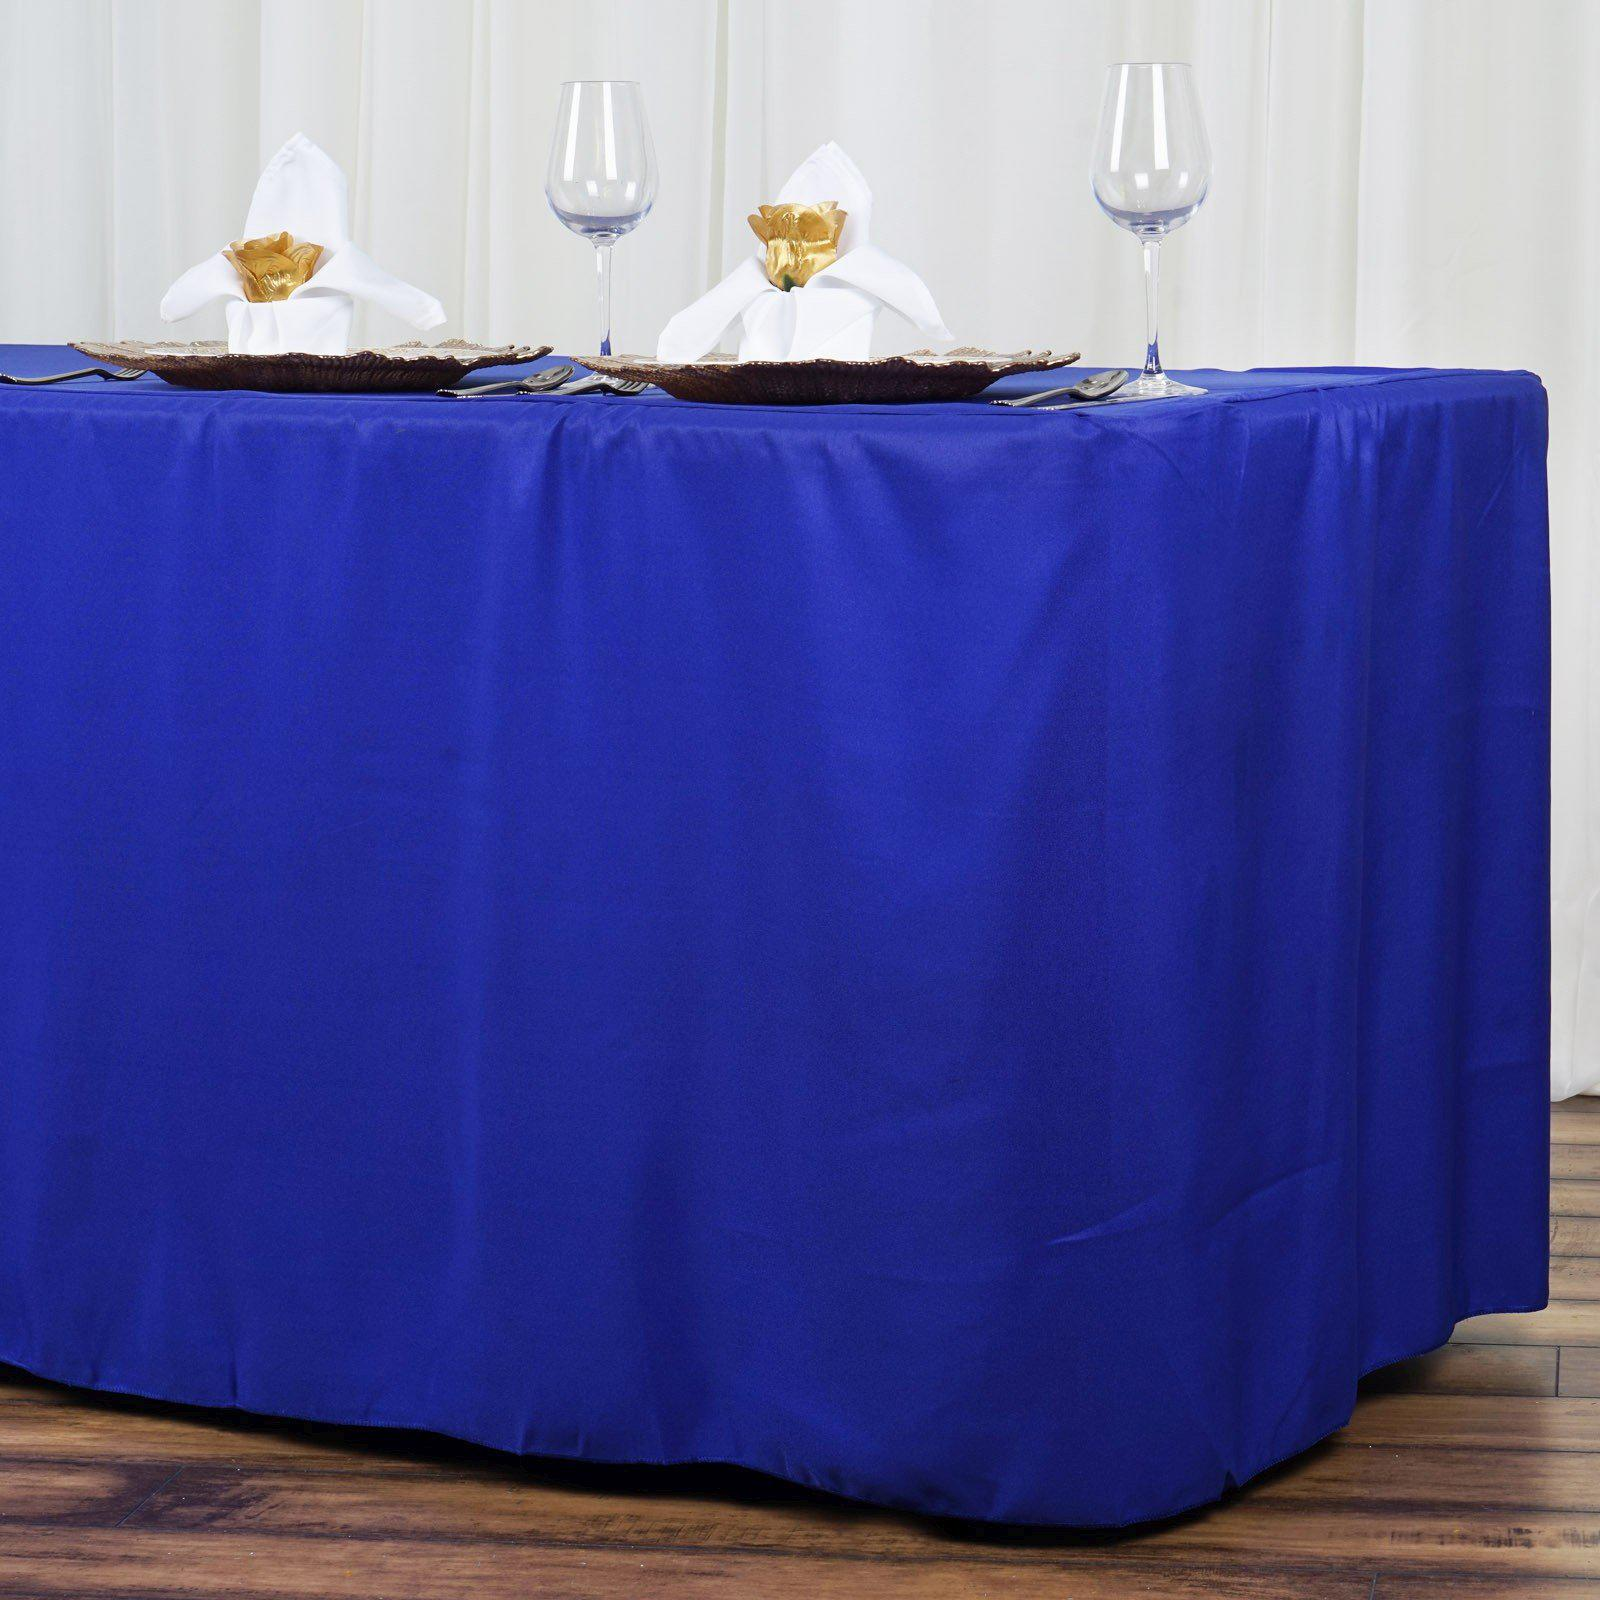 8ft Fitted Royal Blue Wholesale Polyester Table Cover. Soft Close Kitchen Drawer Runners. Modern Rustic Dining Table. Moroccan Coffee Table. Cheap Desks Ikea. Vintage Kitchen Table. Modern Side Table. Pottery Barn Teen Desk Chair. High Top Dinner Table